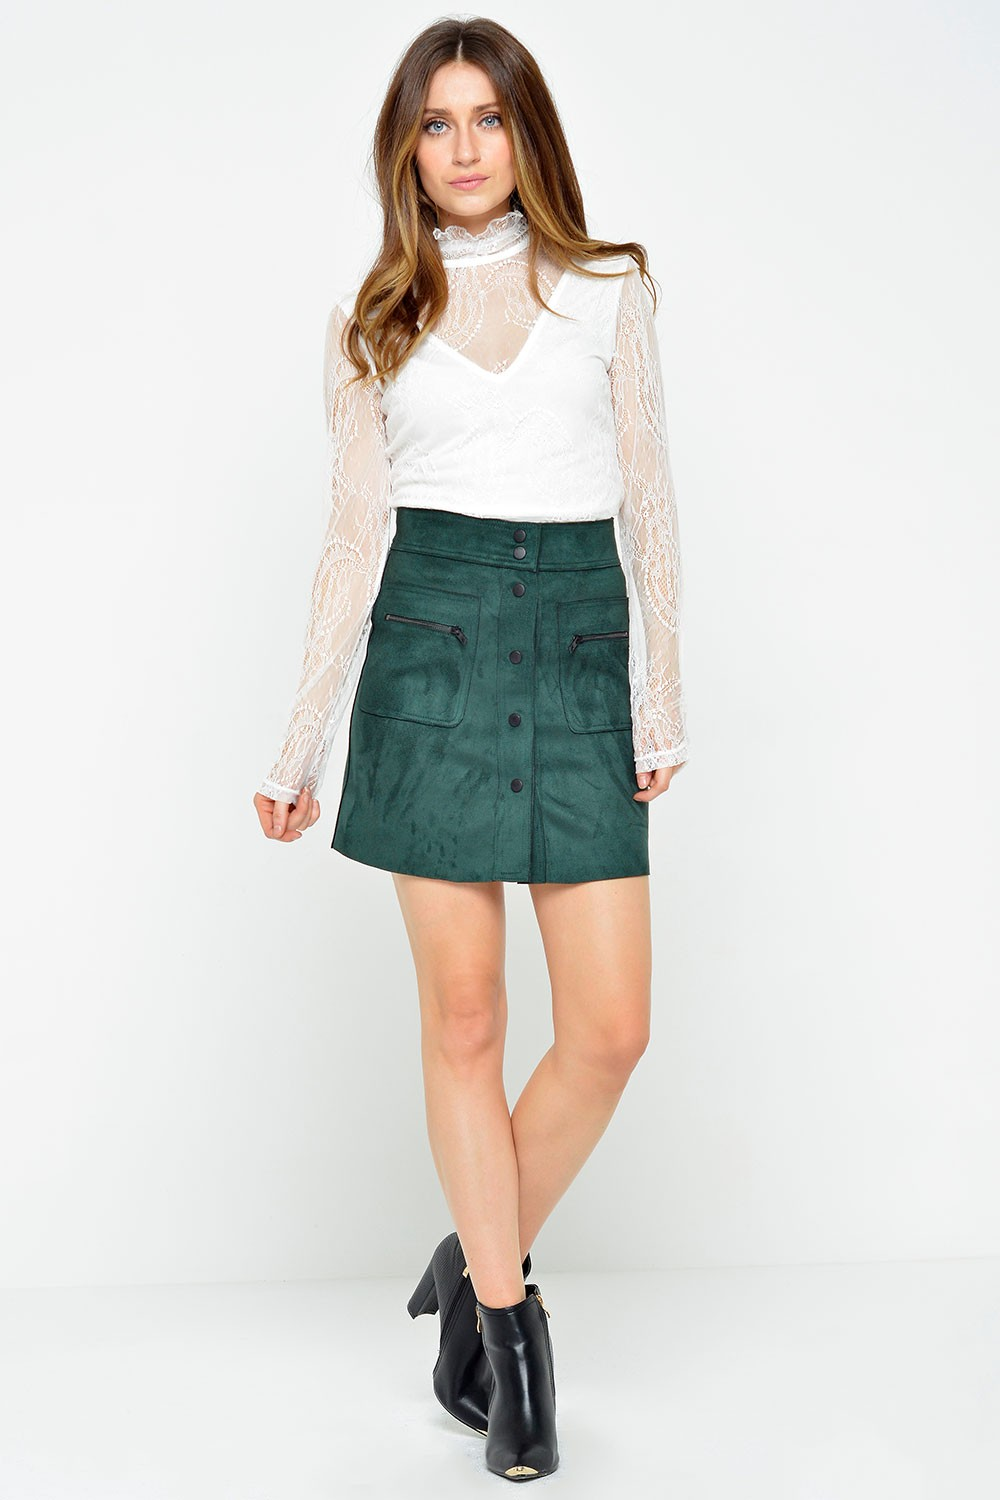 Olivia Bonded Faux Suede Skirt in Green